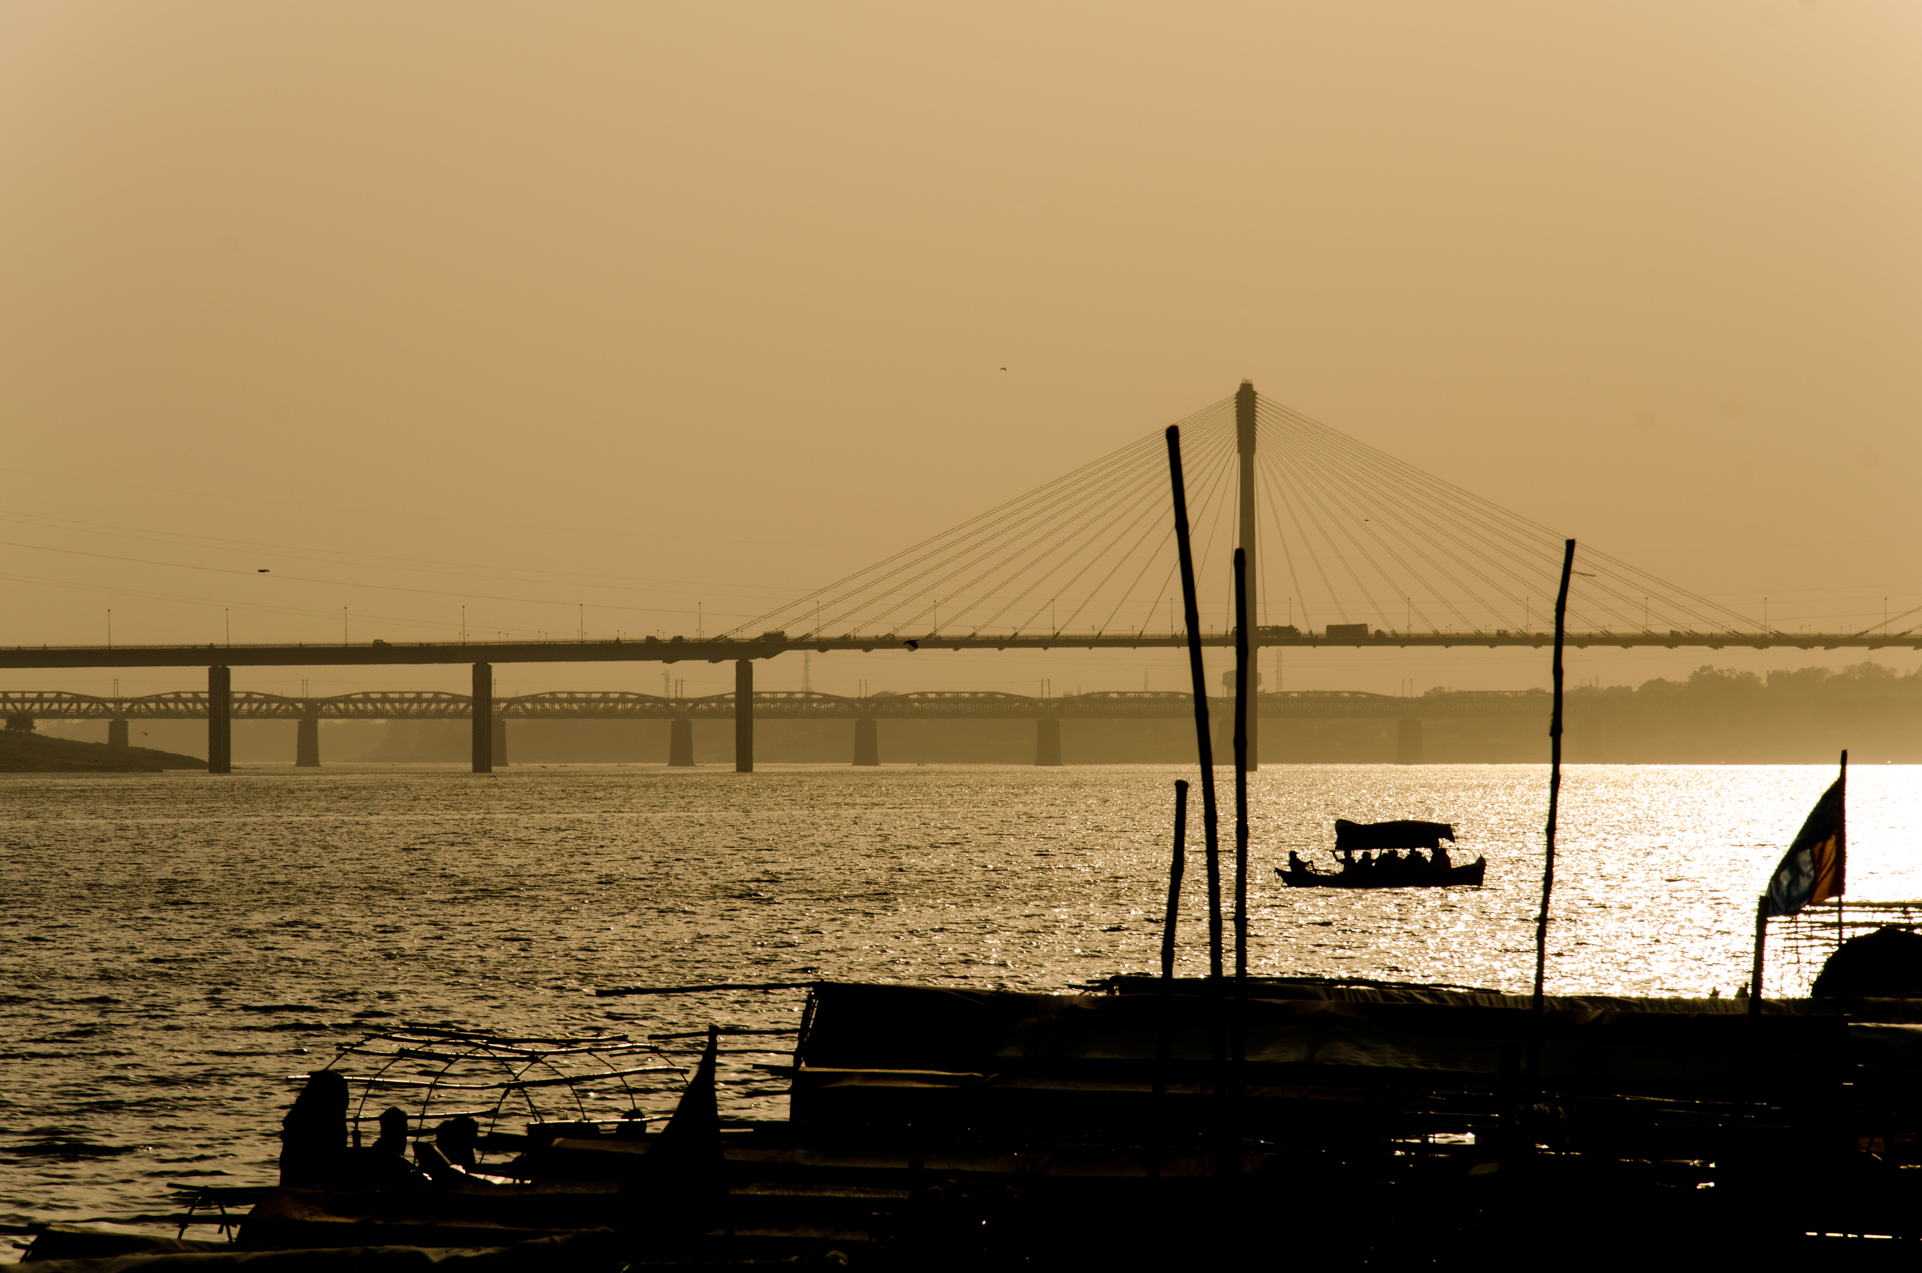 Golden by Shivendra Lal